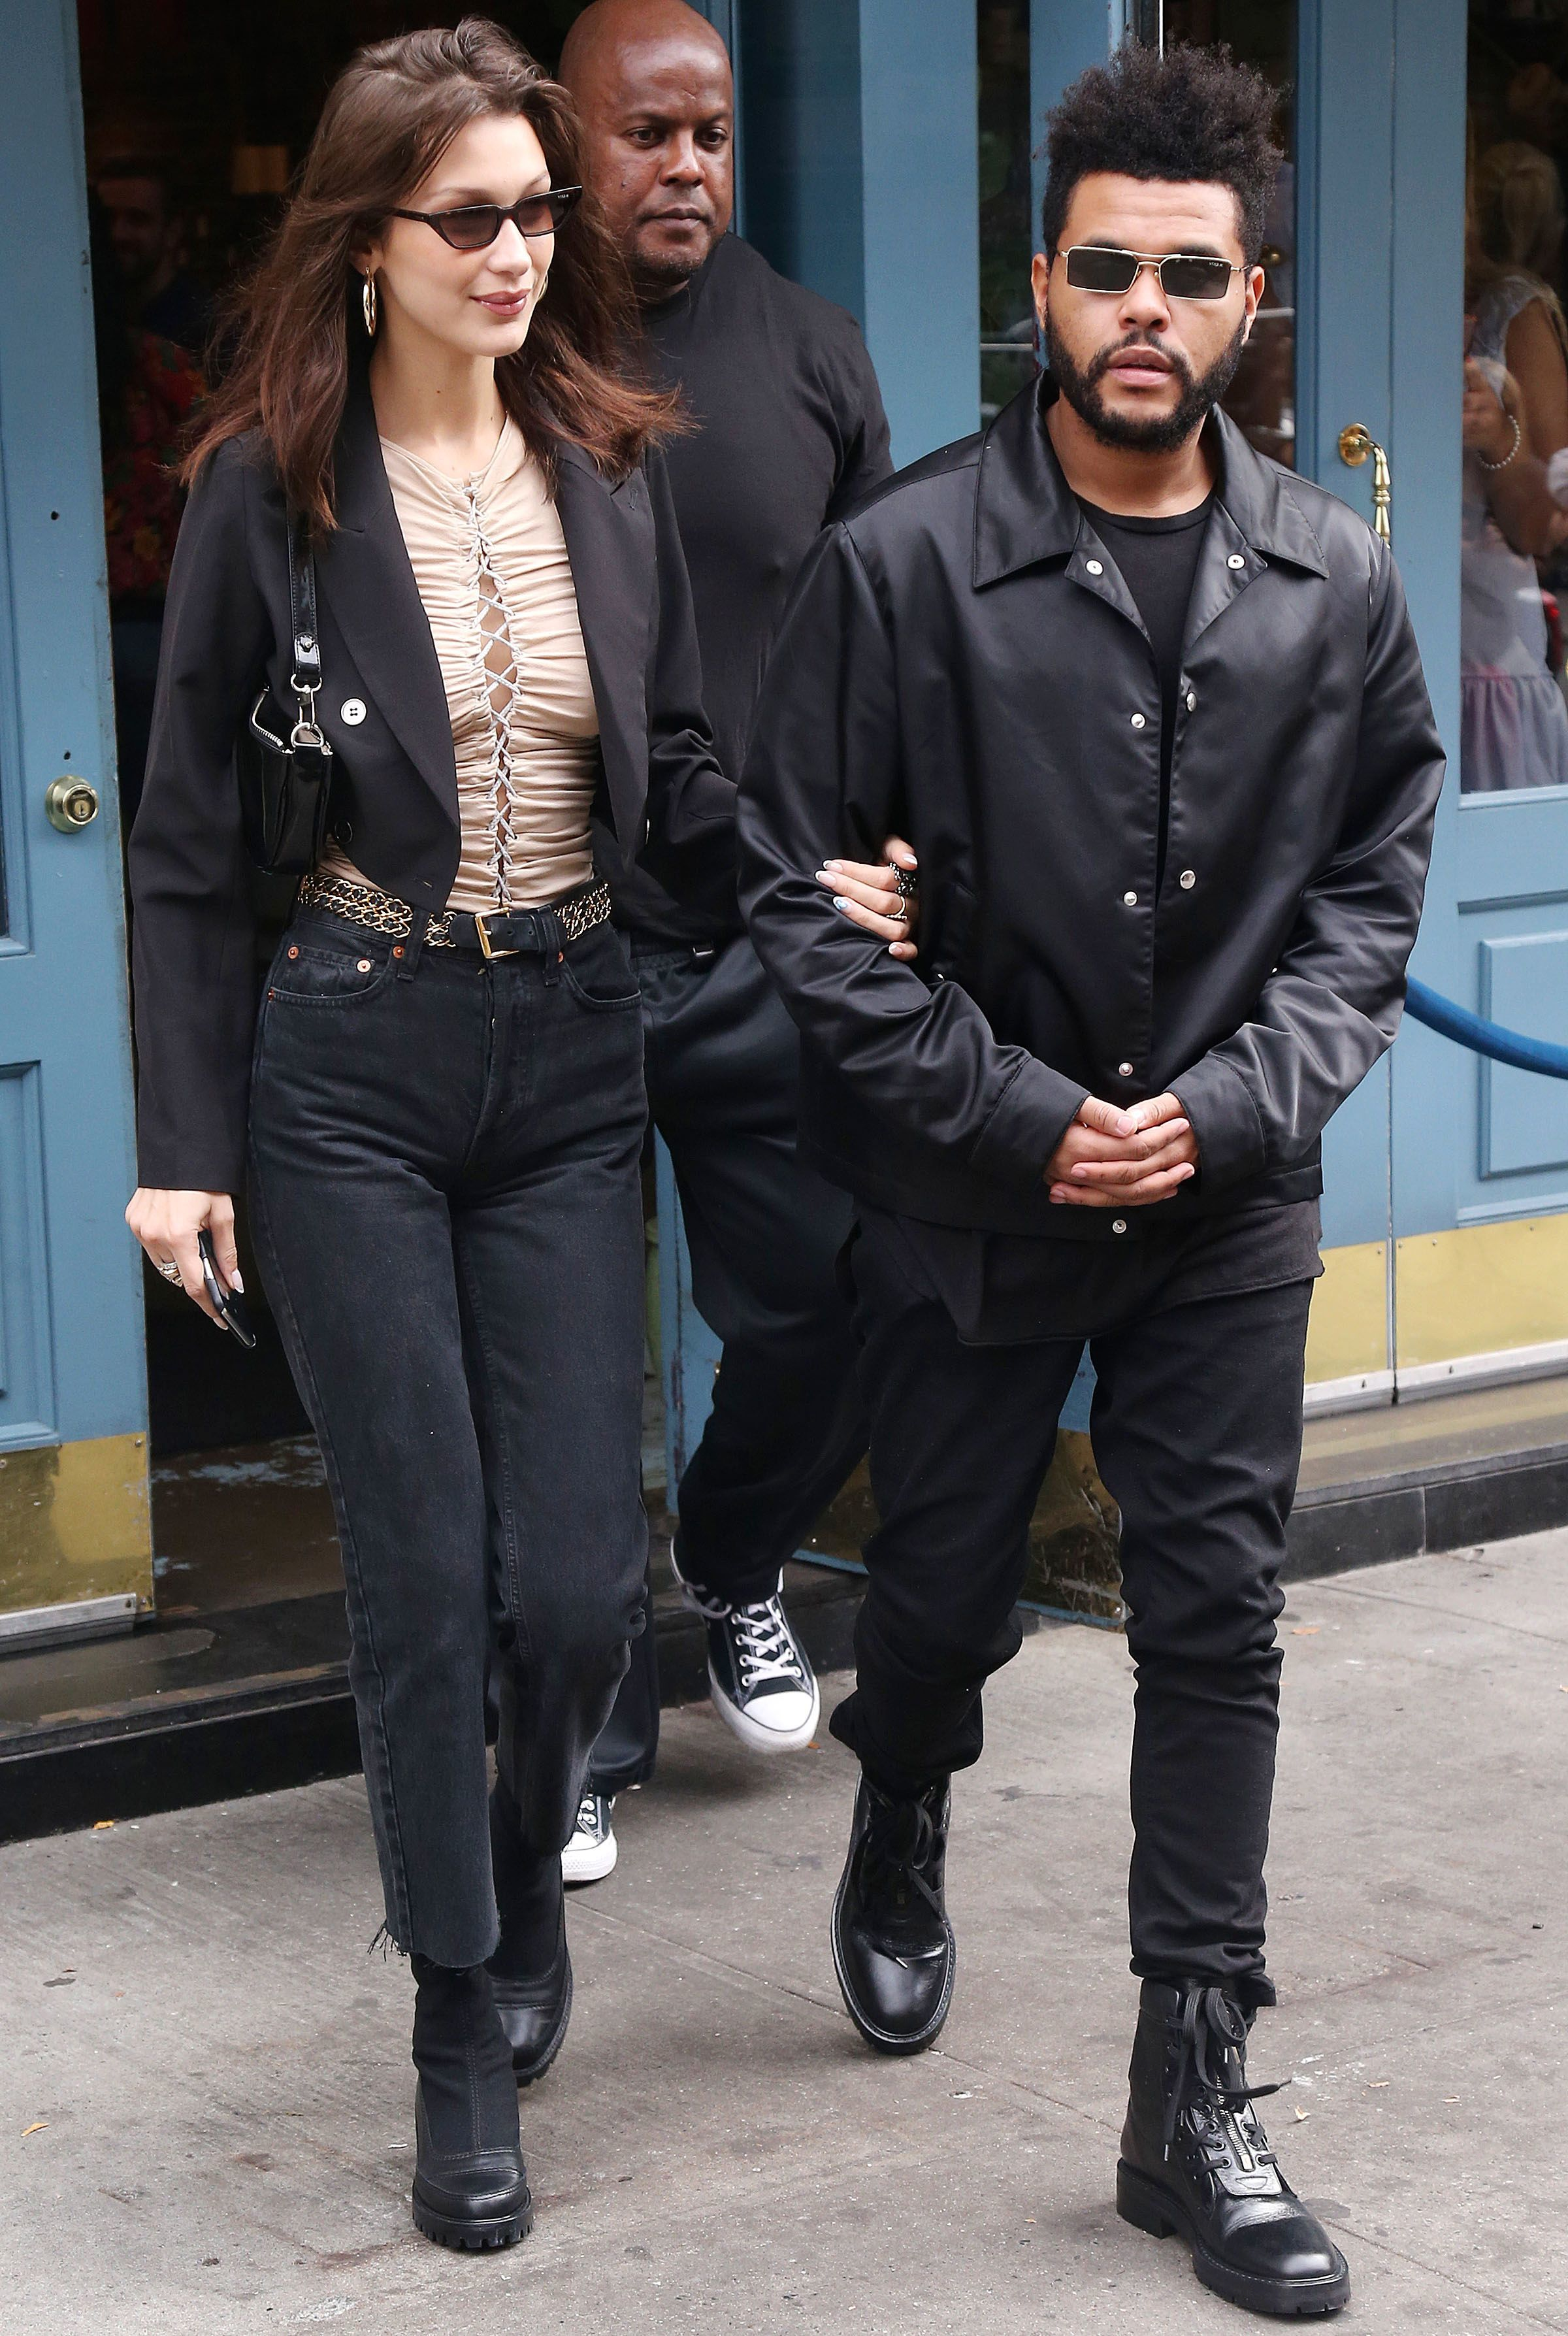 Bella Hadid and boyfriend The Weeknd leave brunch together in New York City on her 22nd birthday, Oct. 9, 2018.